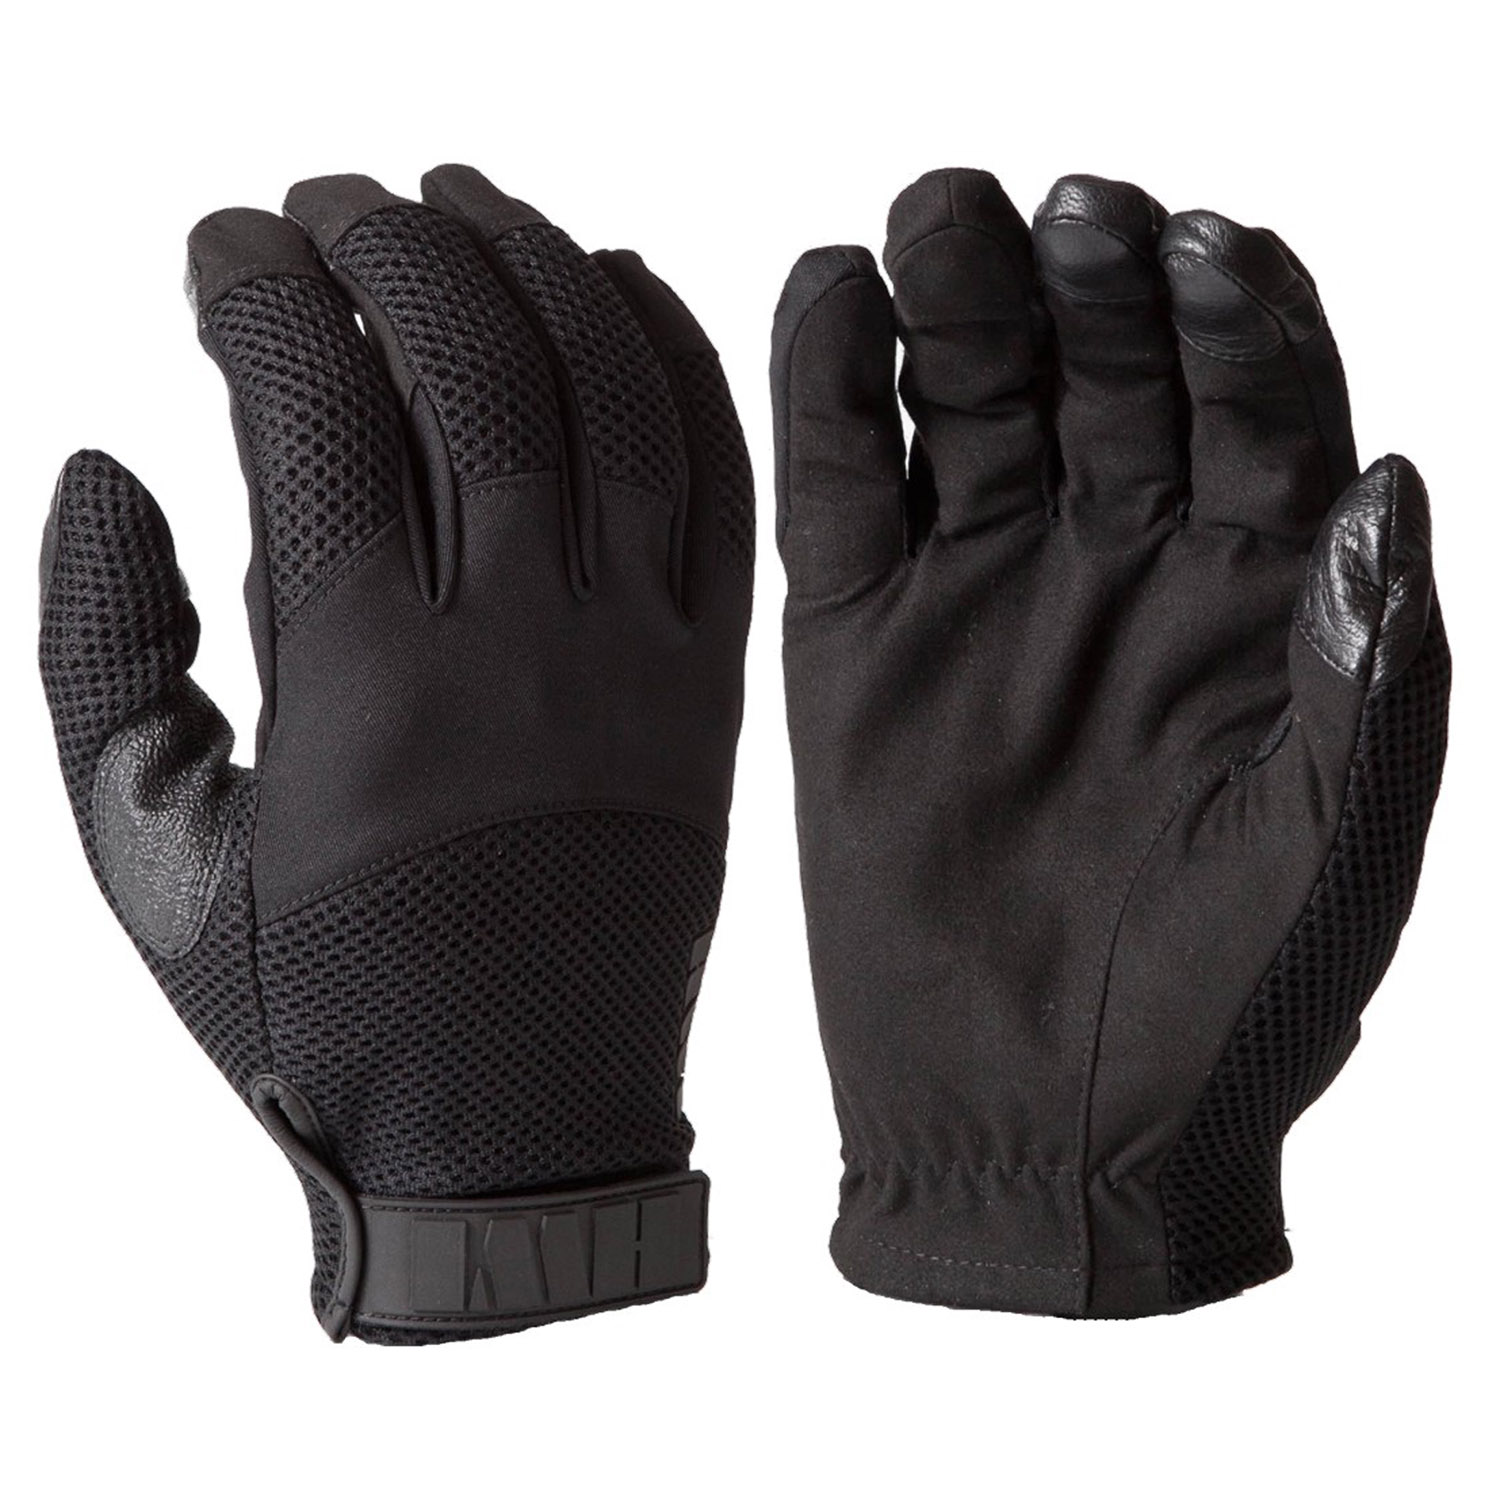 Nike Gloves Touch Screen: HWI Gear Unlined Touchscreen Gloves